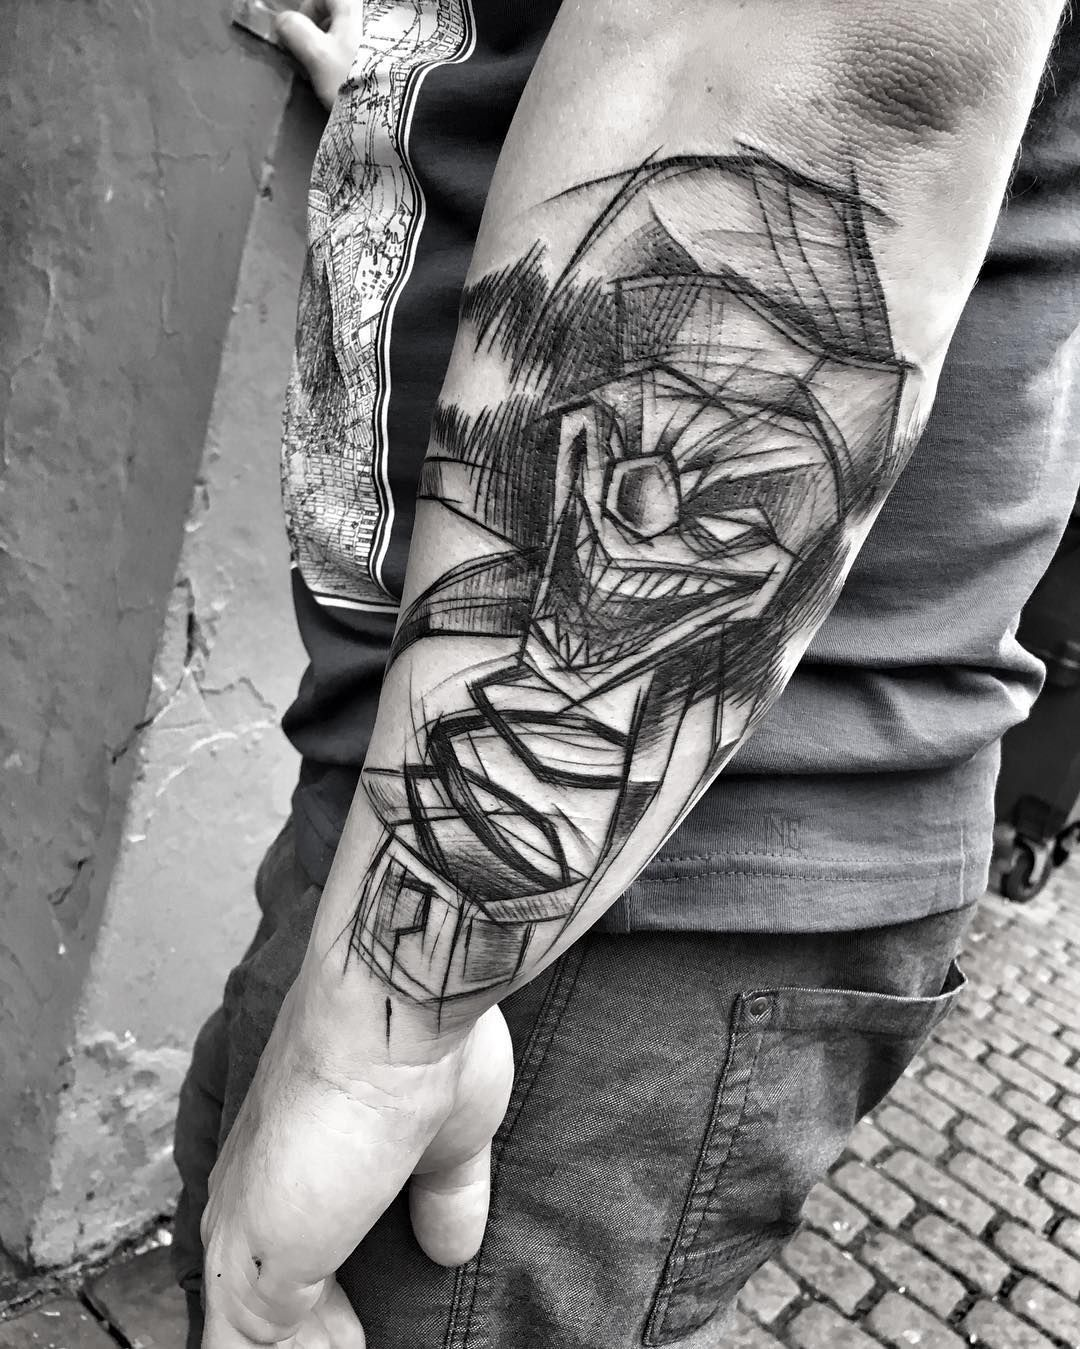 Joker Sketch Style Tattoo By Ineepine The Lines Are Irregular And